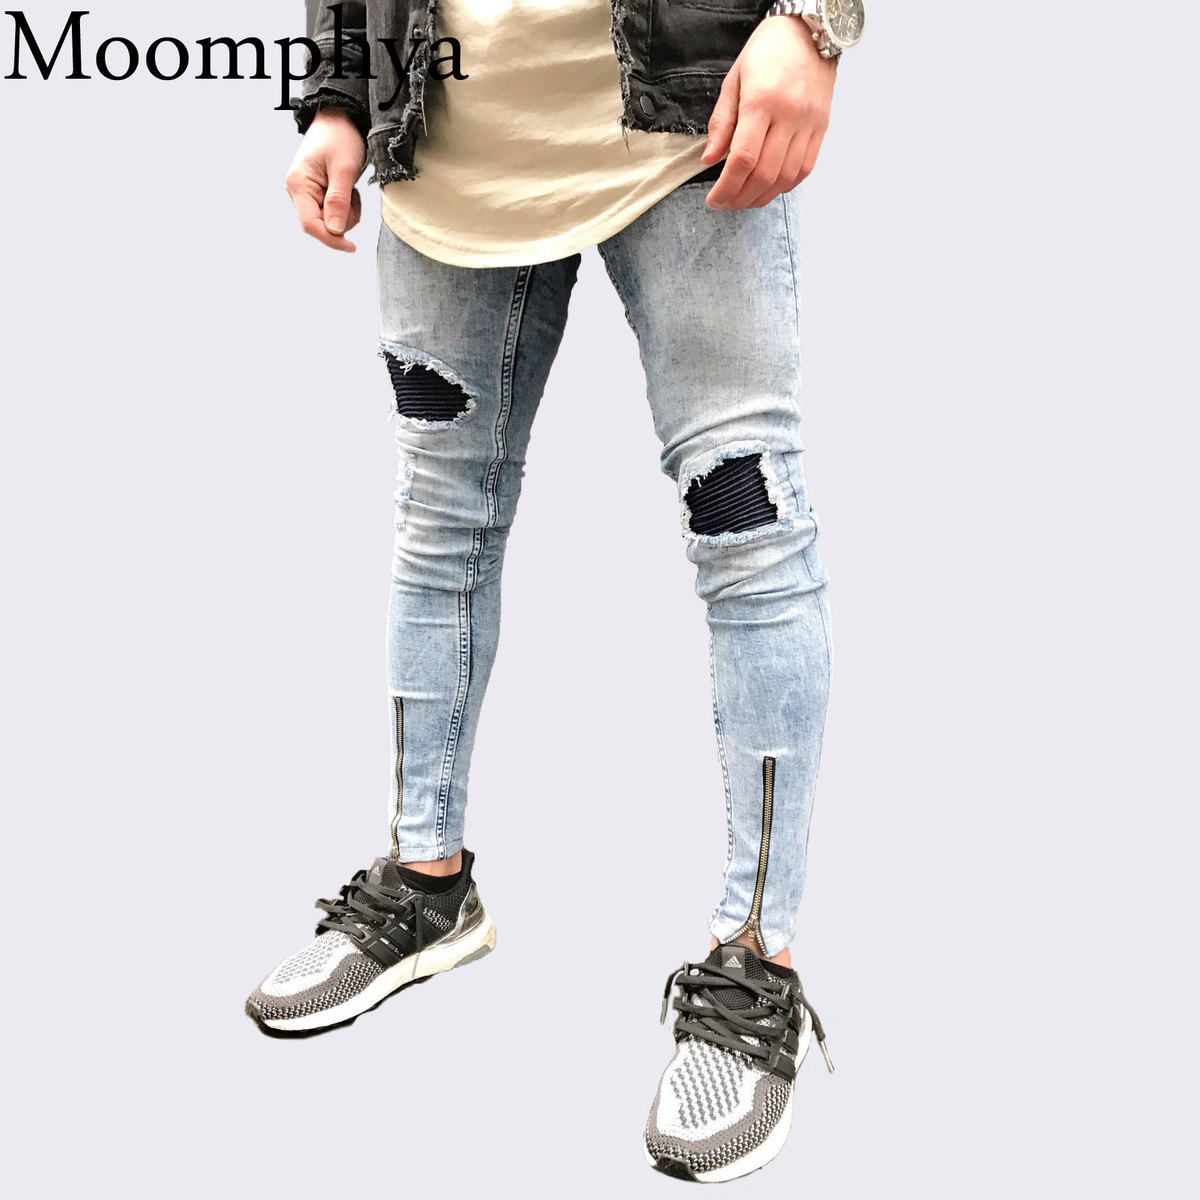 Moomphya 2018 New Men blue jeans Slim Fit hip hop jeans for men skinny biker jeans Distressed ripped holes zipper jeans